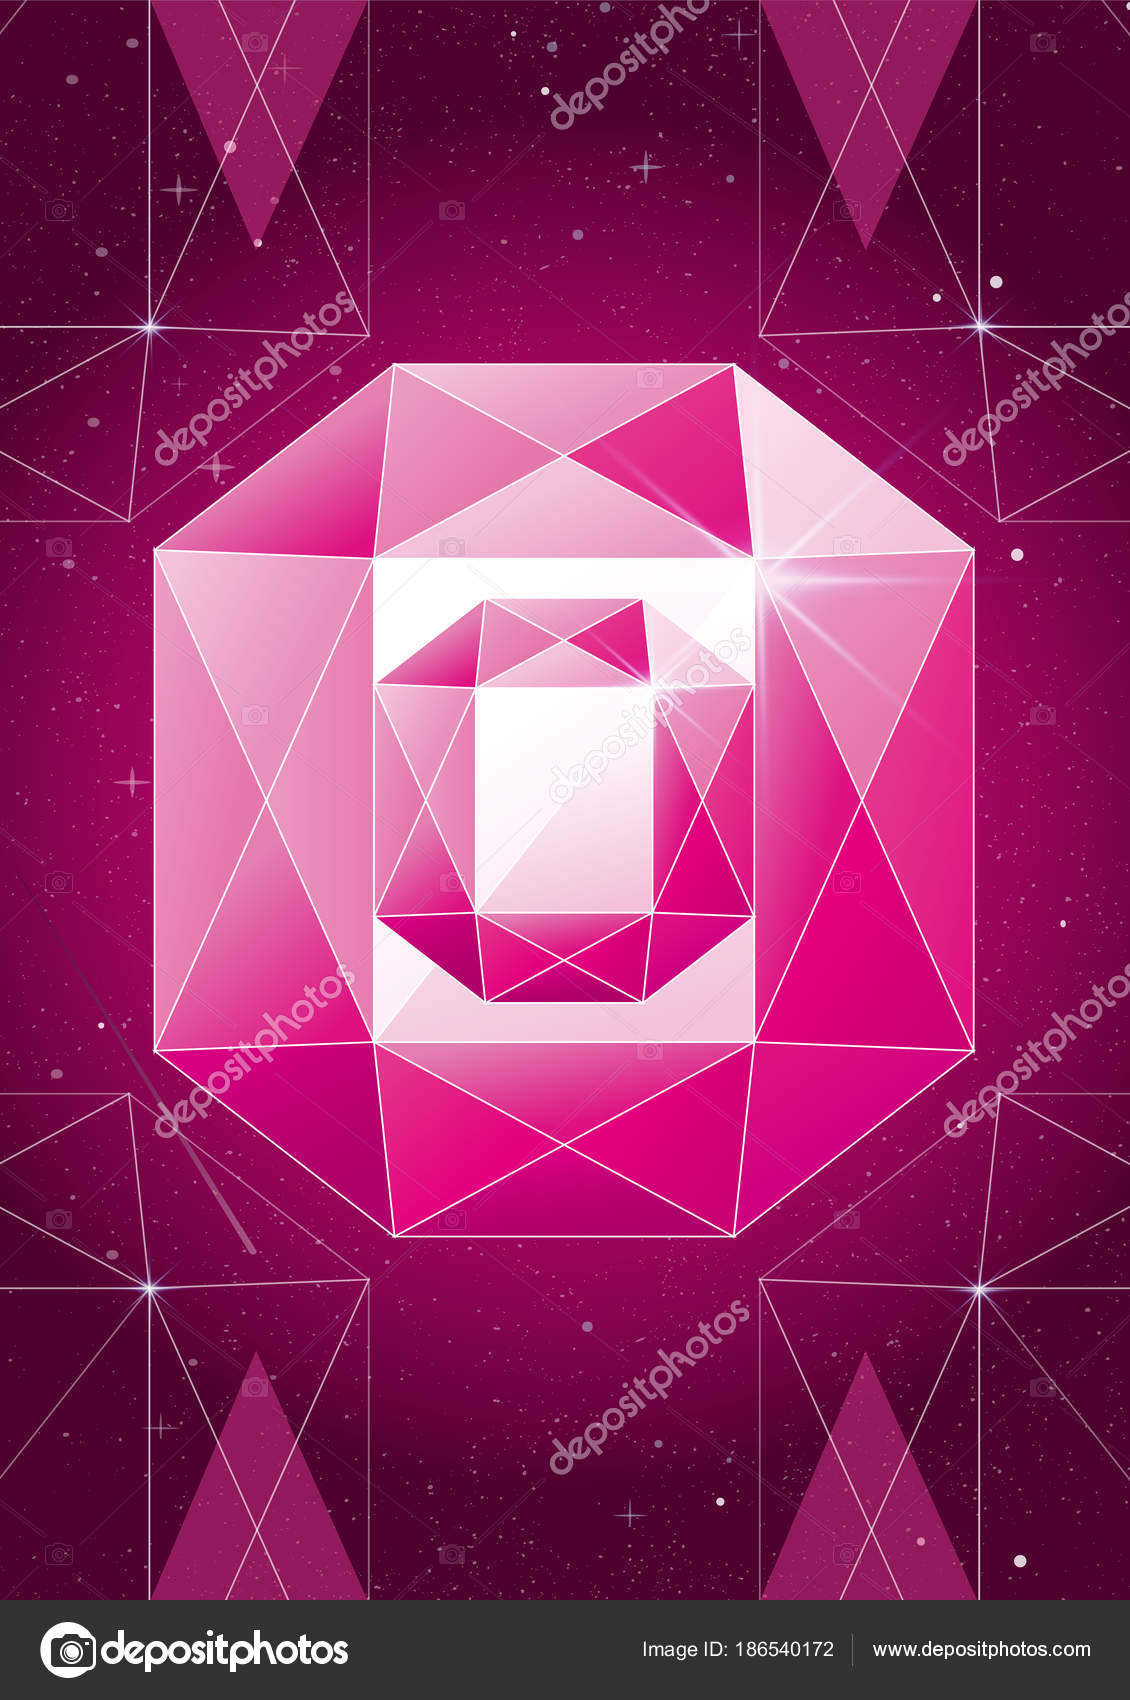 heart geometric mosaic background stock abstract pattern colorful illustration vector polygon broken diamond depositphotos valentine